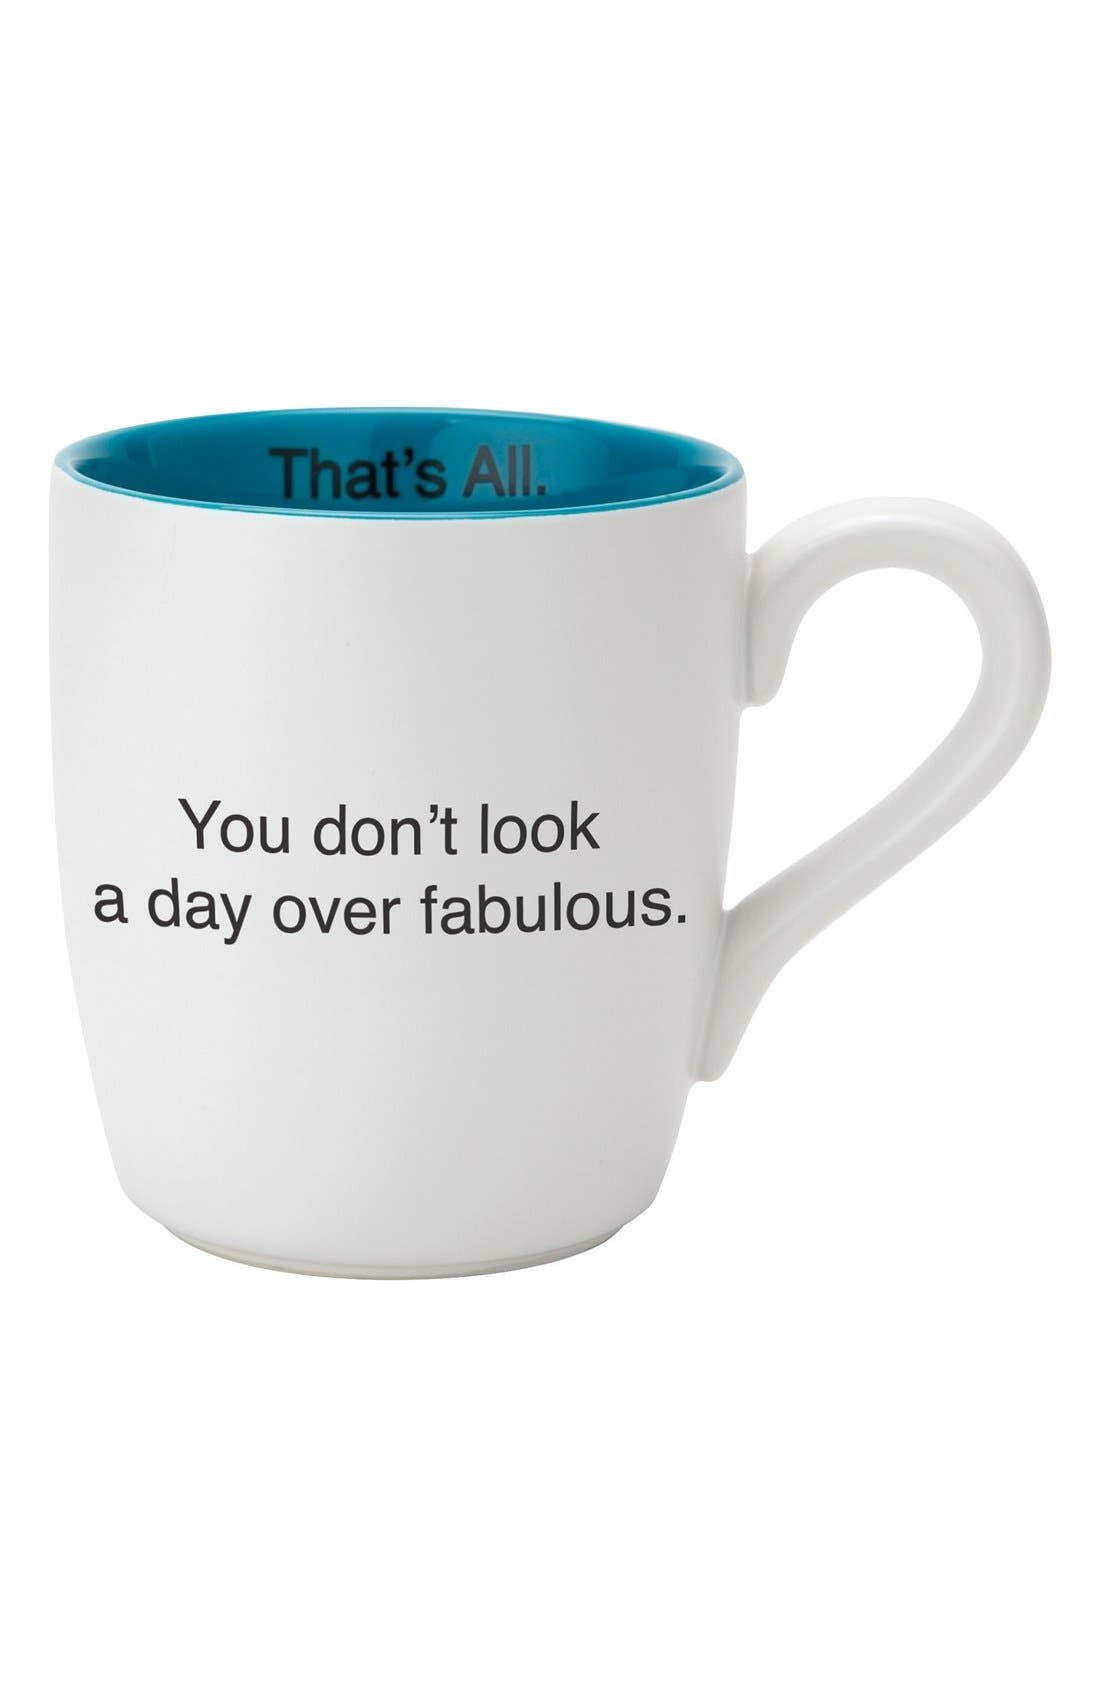 CB GIFT 'Fabulous - That's All' Mug